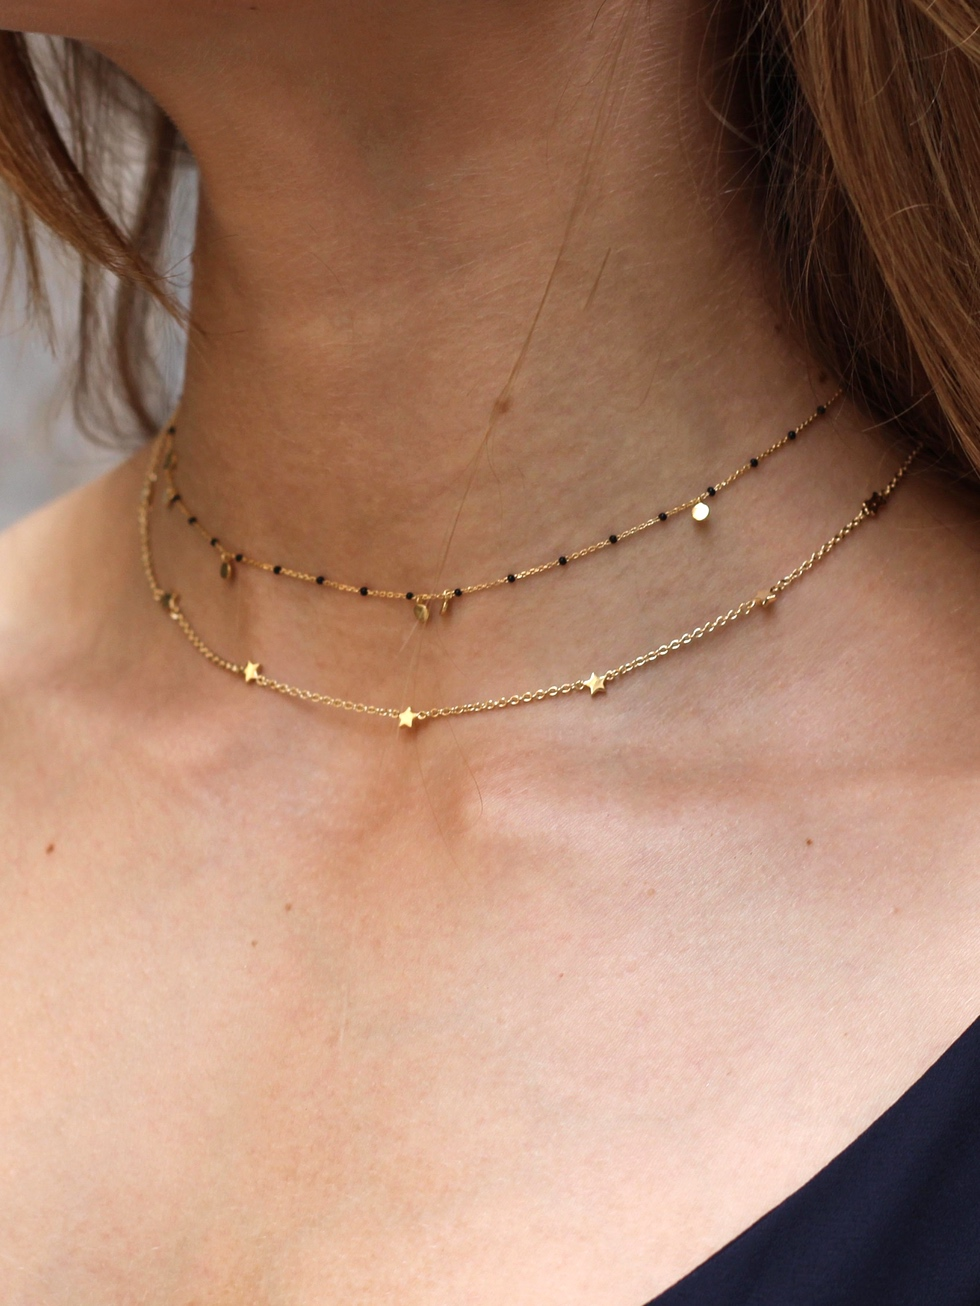 NUIT gold necklace